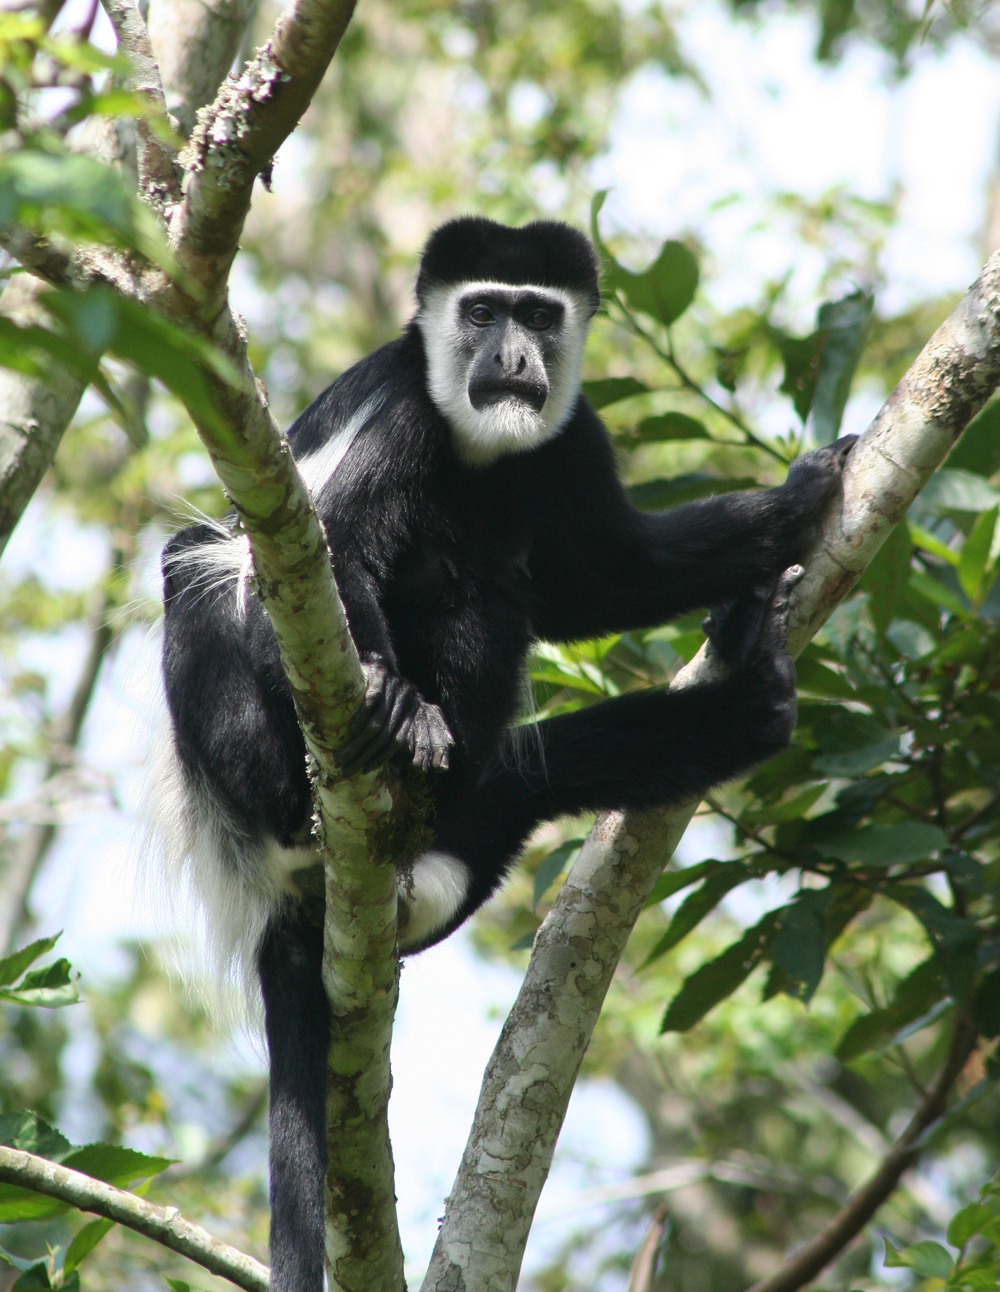 A Black and White Colobus Monkey From Kibale National Park, Uganda